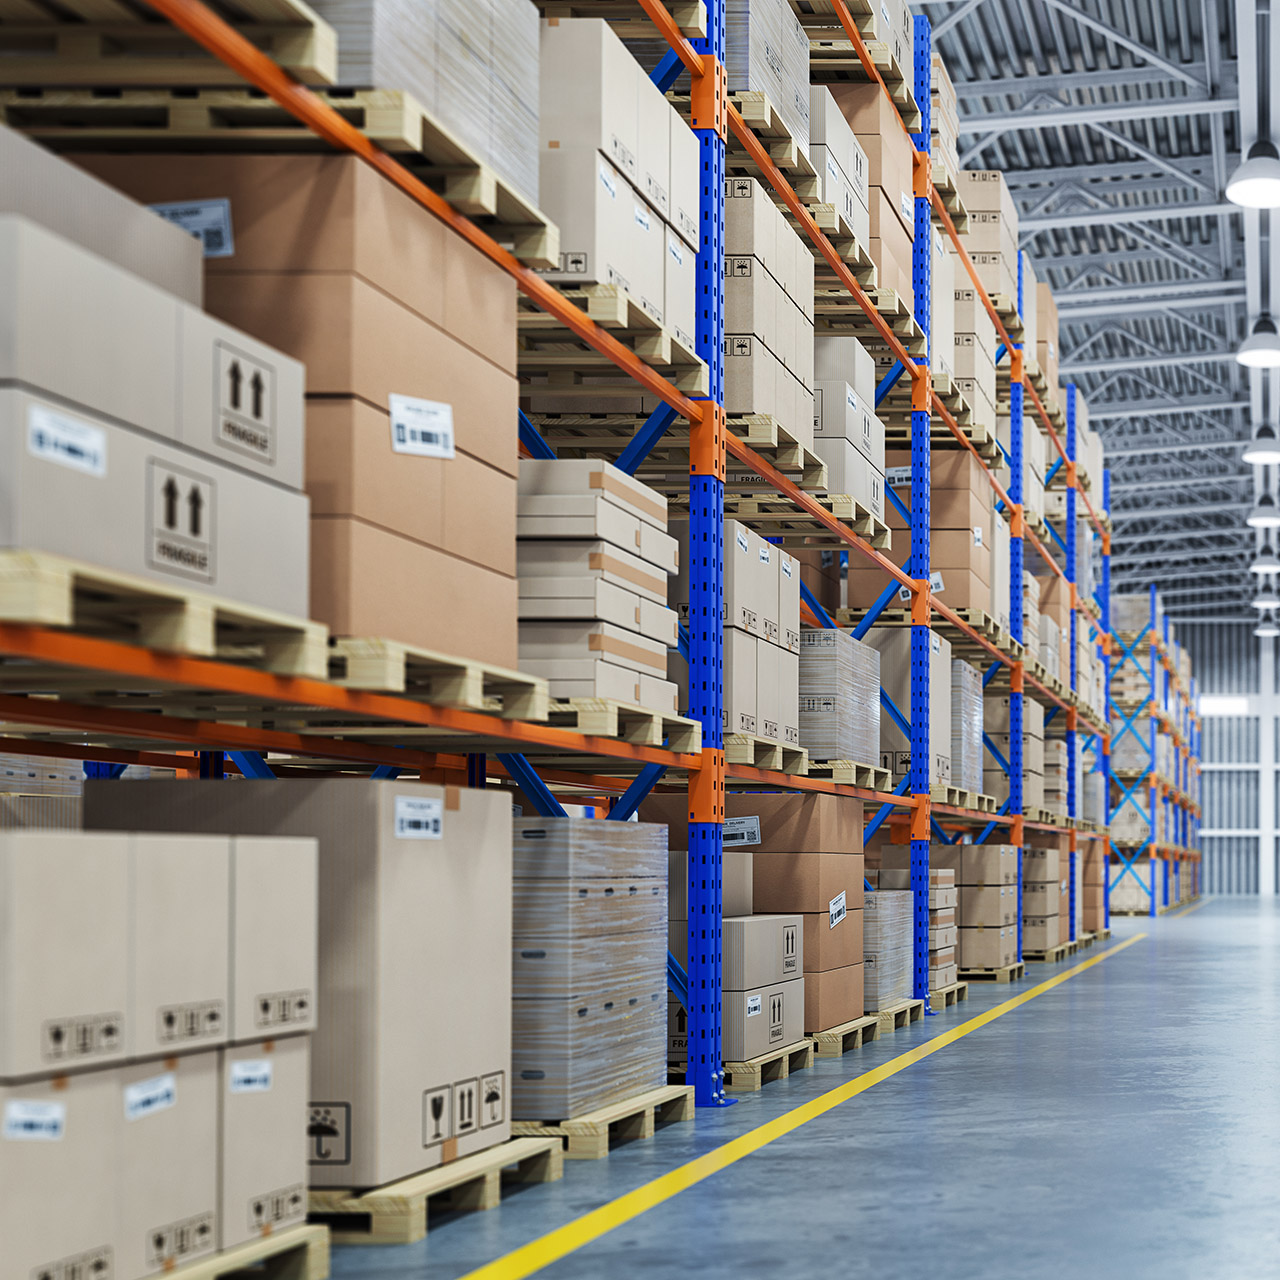 Warehouse or storage and shelves with cardboard boxes